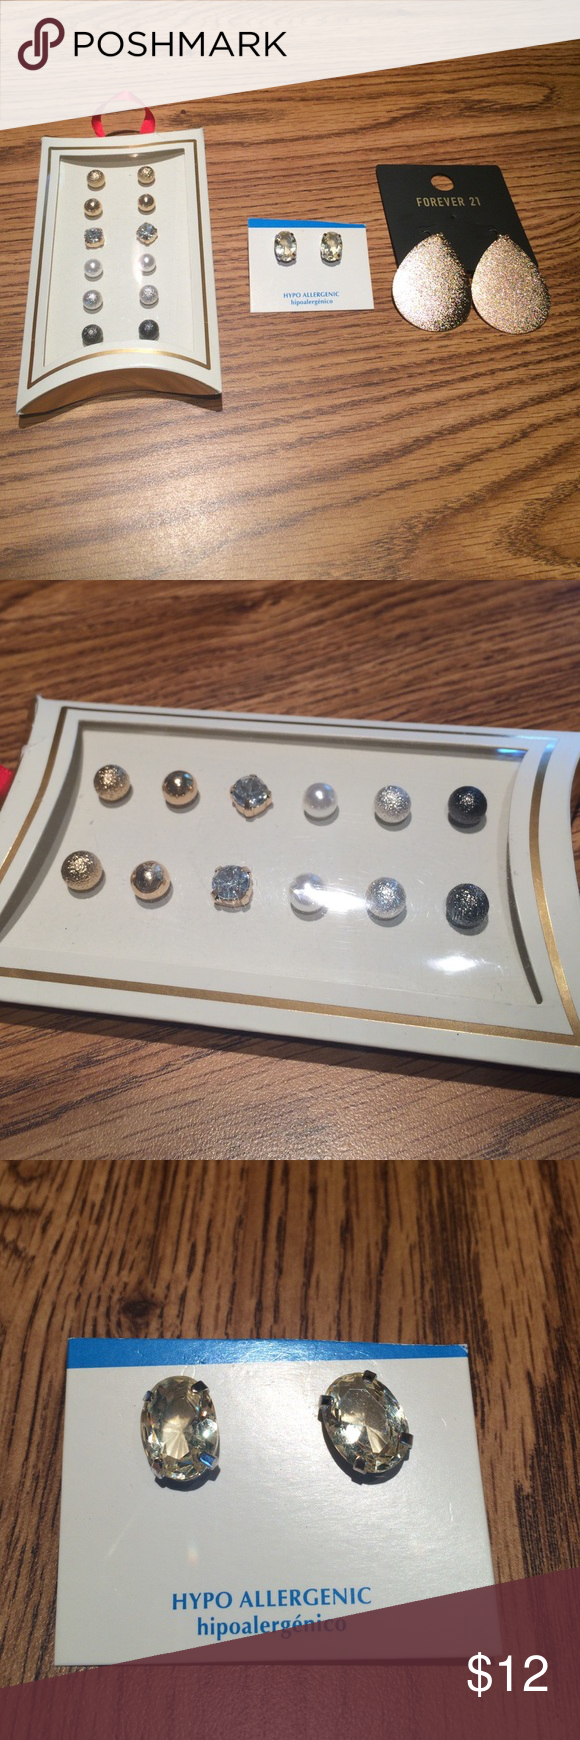 NWT Earring Bundle 8 pairs of earrings sold together. 7 are studs and one is dangly. Never worn but box with 6 studs was opened. Mixture of rose gold, silver and pearls Jewelry Earrings